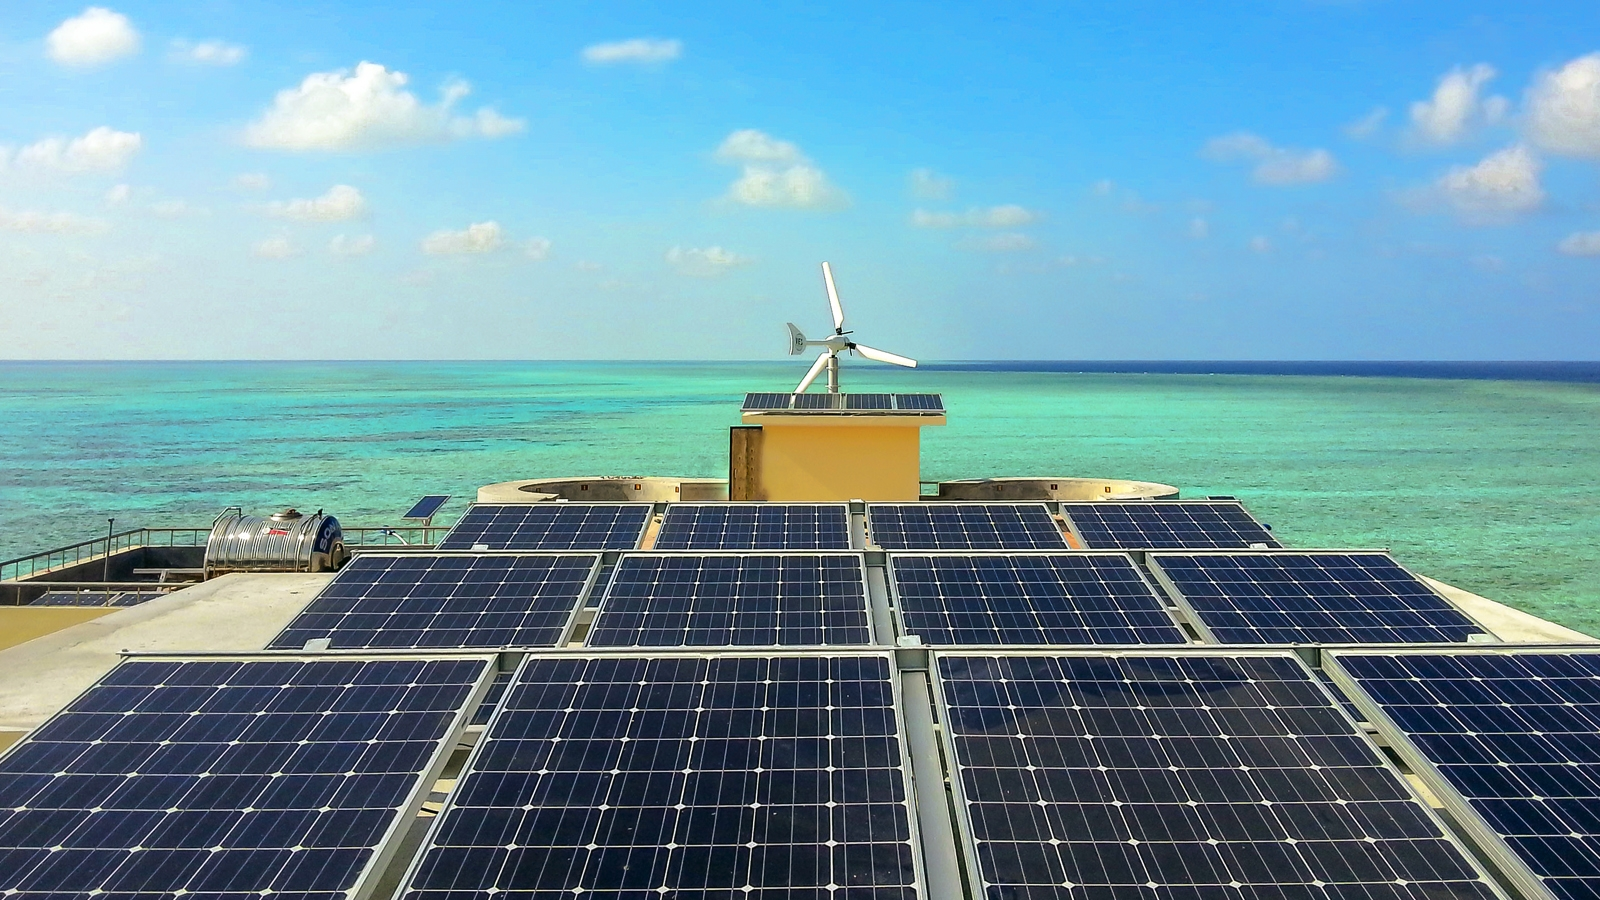 British group intends to develop rooftop solar projects in Dong Nai